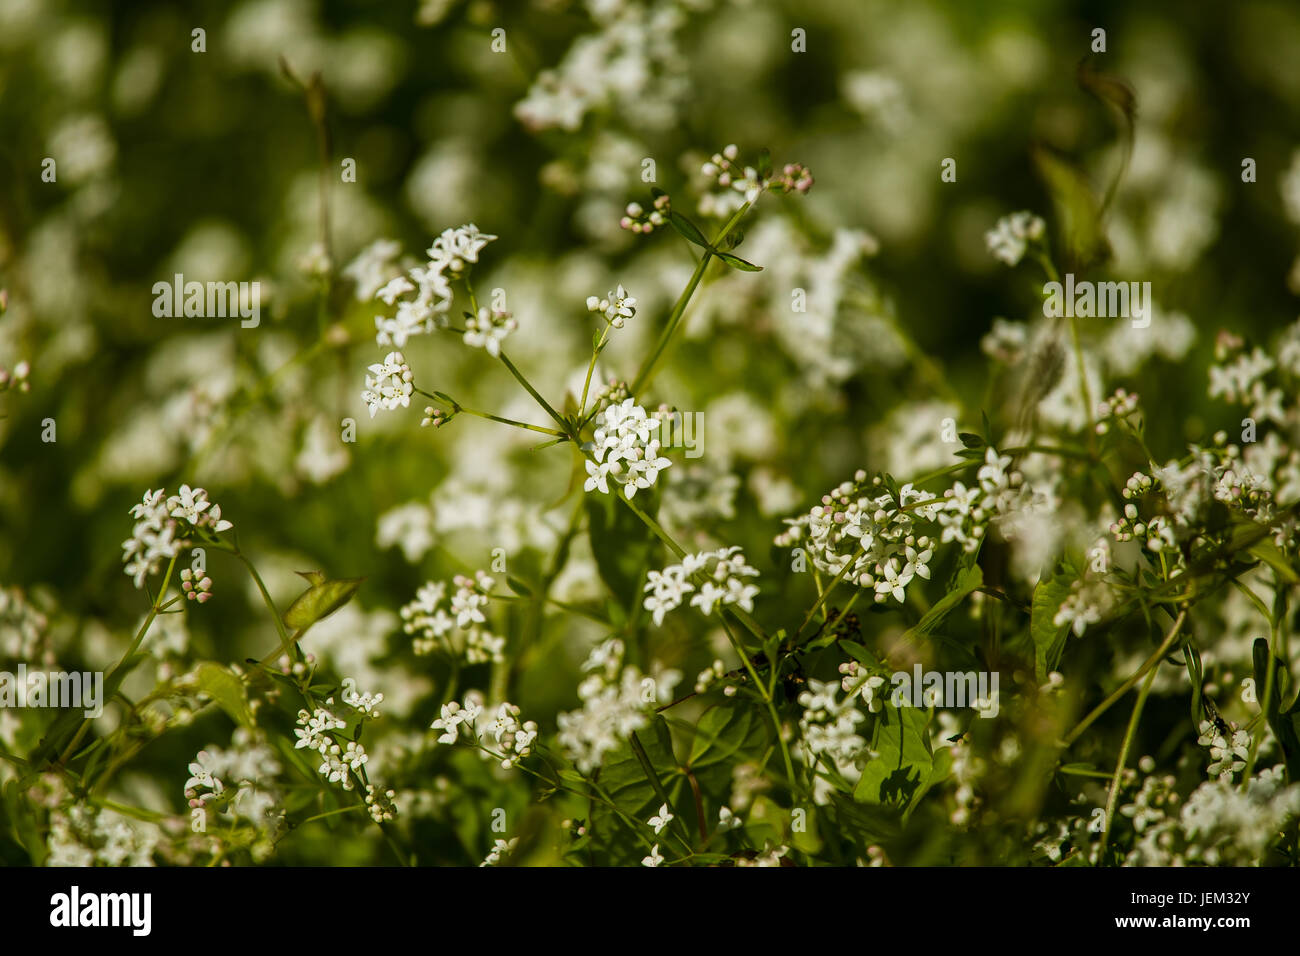 Beautiful White Tiny Flowers In A Natural Habitat In Summer In